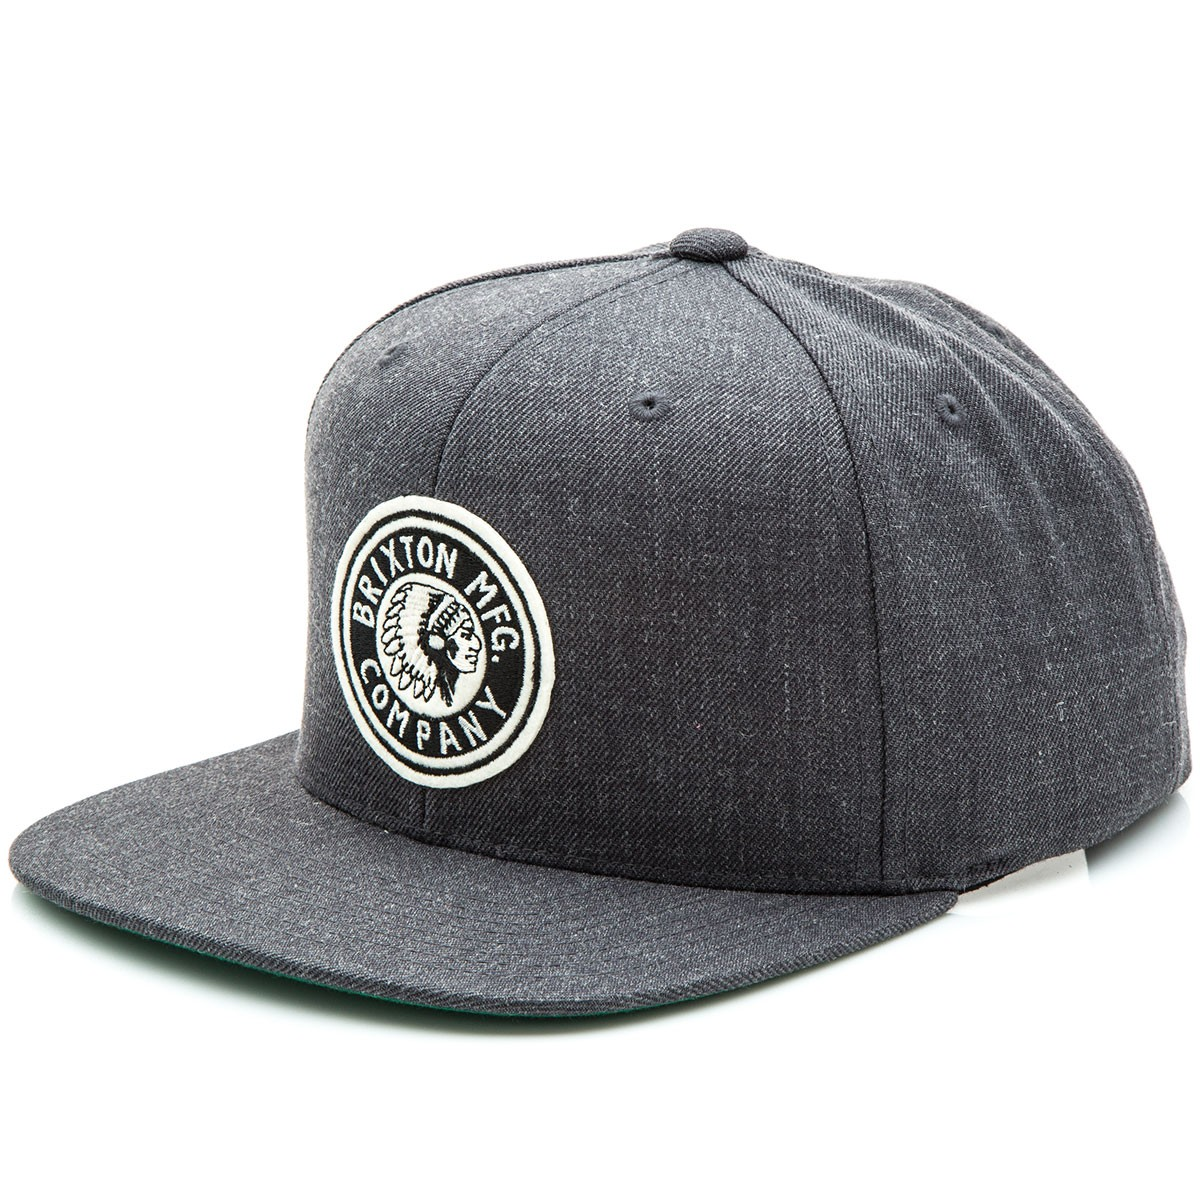 afe42bf44d692 brixton-rival-snapback-hat-charcoal-heather-1.1506678211.jpg